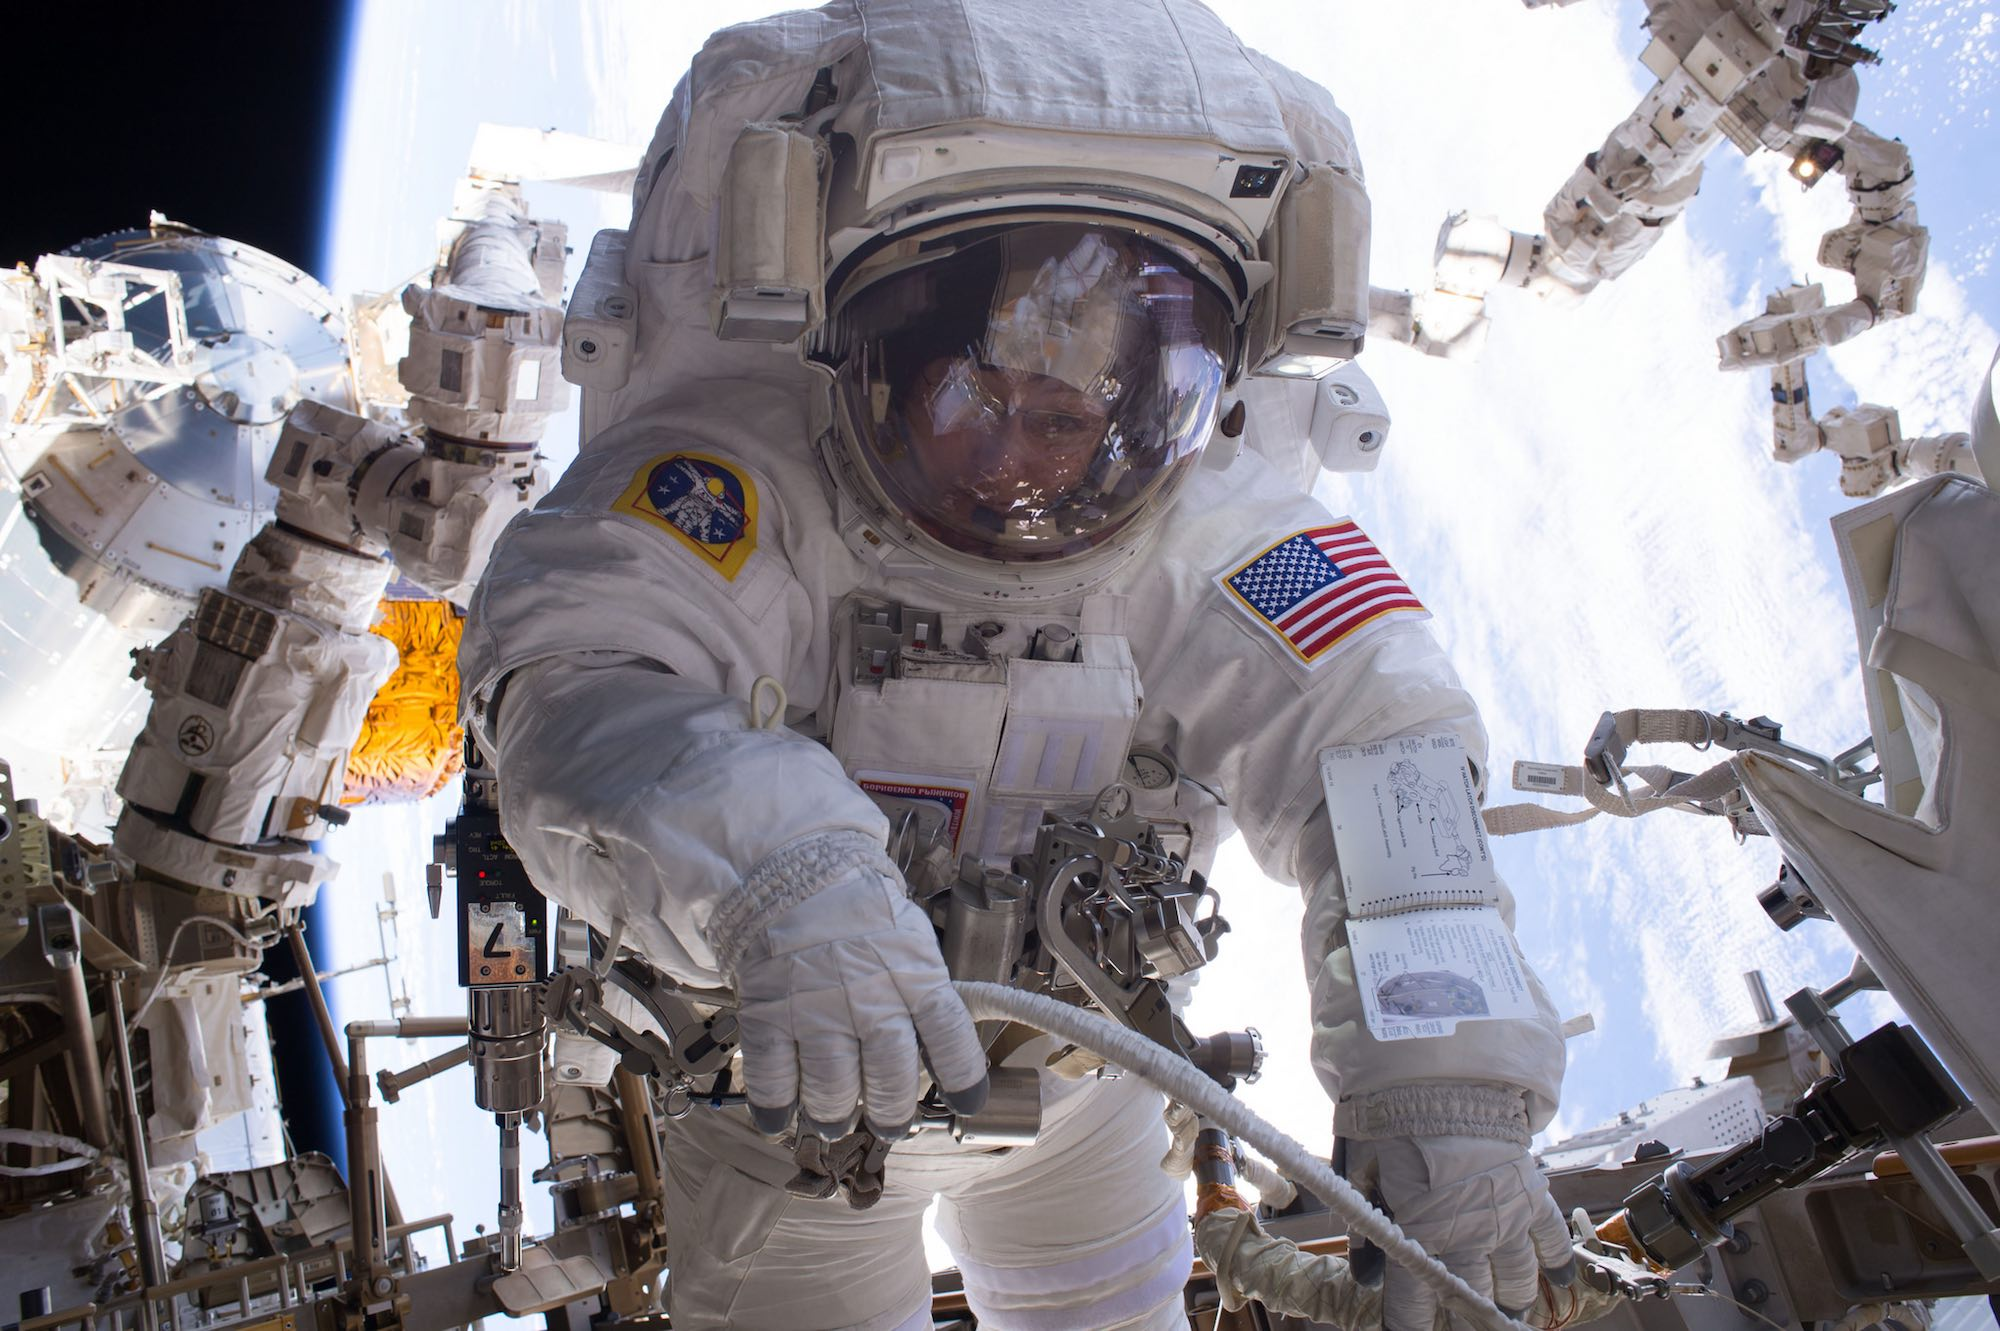 Peggy Whitson during a spacewalk. With a total of 8, she holds the women's record. Shortly, when she completes another spacewalk with Thomas Pesquet, she will have 9 to her credit. Image credit: NASA